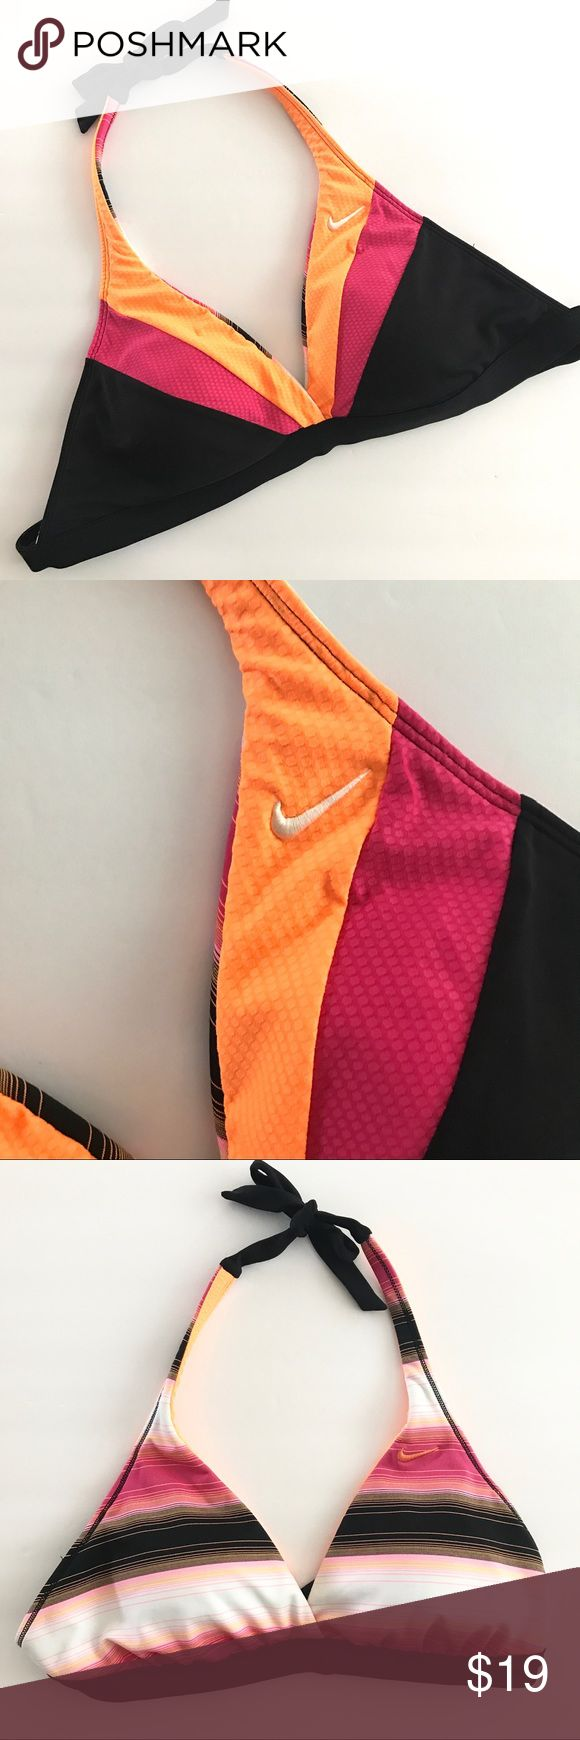 Nike Reversible Bathing Suit Top Triangle bikini top, tie at neck and back. Reversible. Black, pink, white, orange. Nike swoosh on both sides. Very faint stain on white side. There is a close up picture but it's difficult to see because it's light. No tag. Fits up to a large c cup. Nike Swim Bikinis